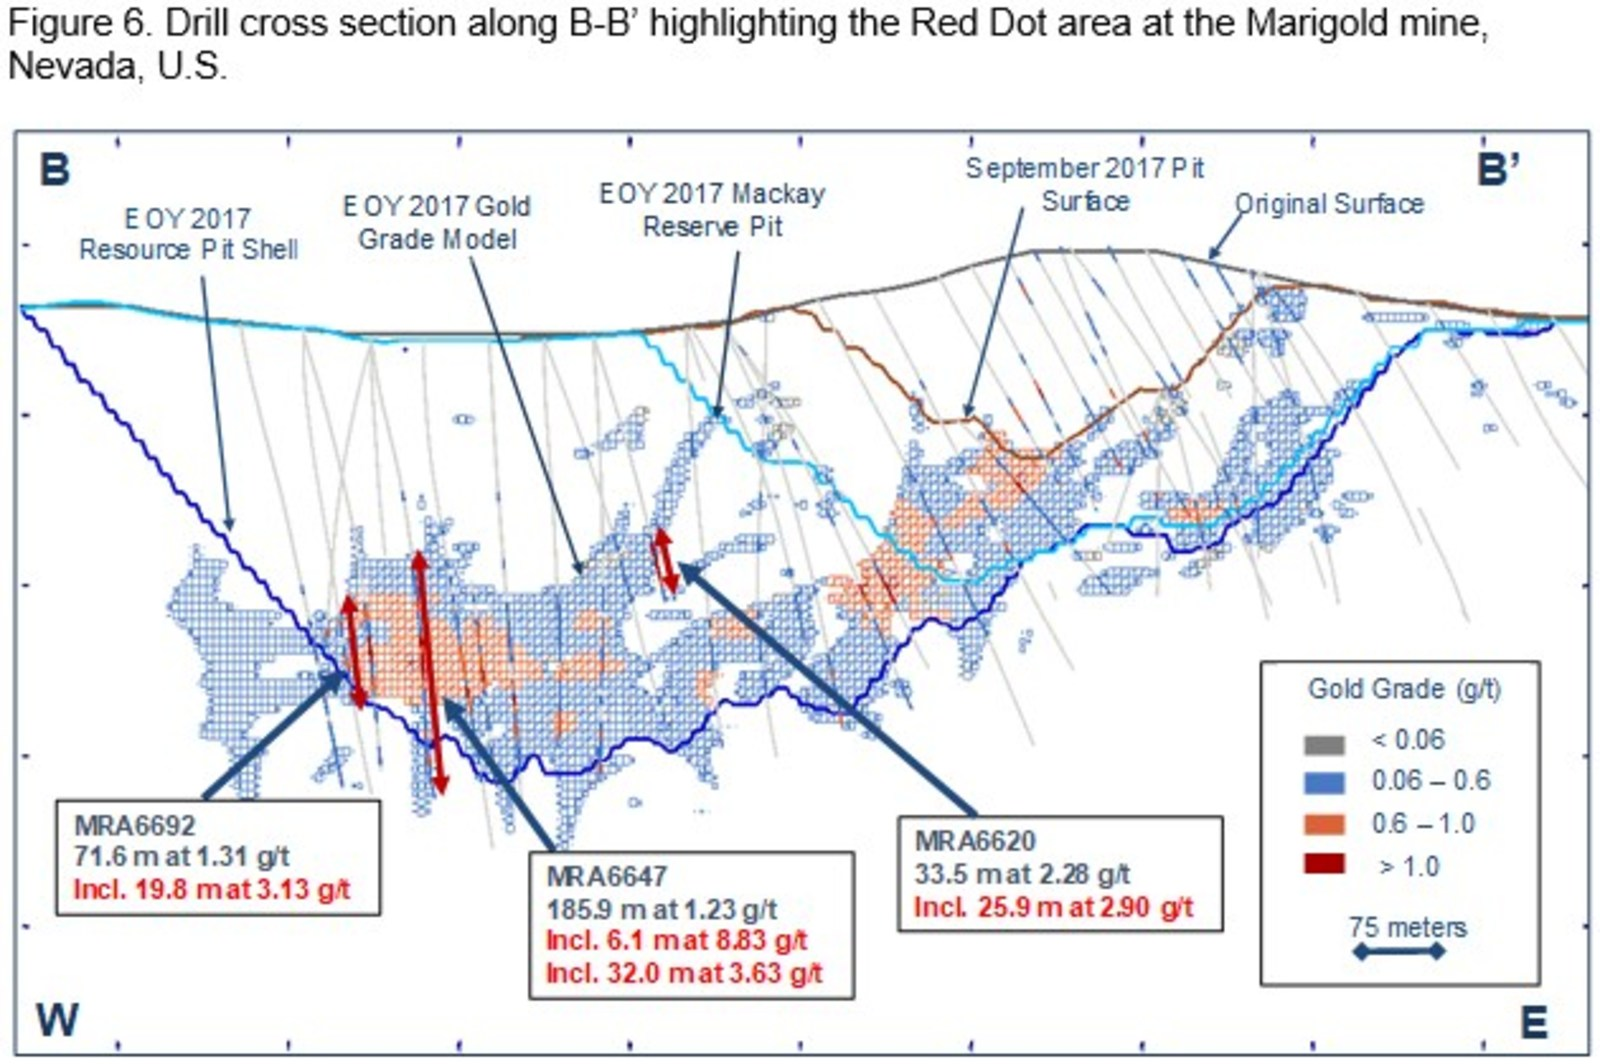 Figure 6. Drill cross section along B-B' highlighting the Red Dot area at the Marigold mine, Nevada, U.S.